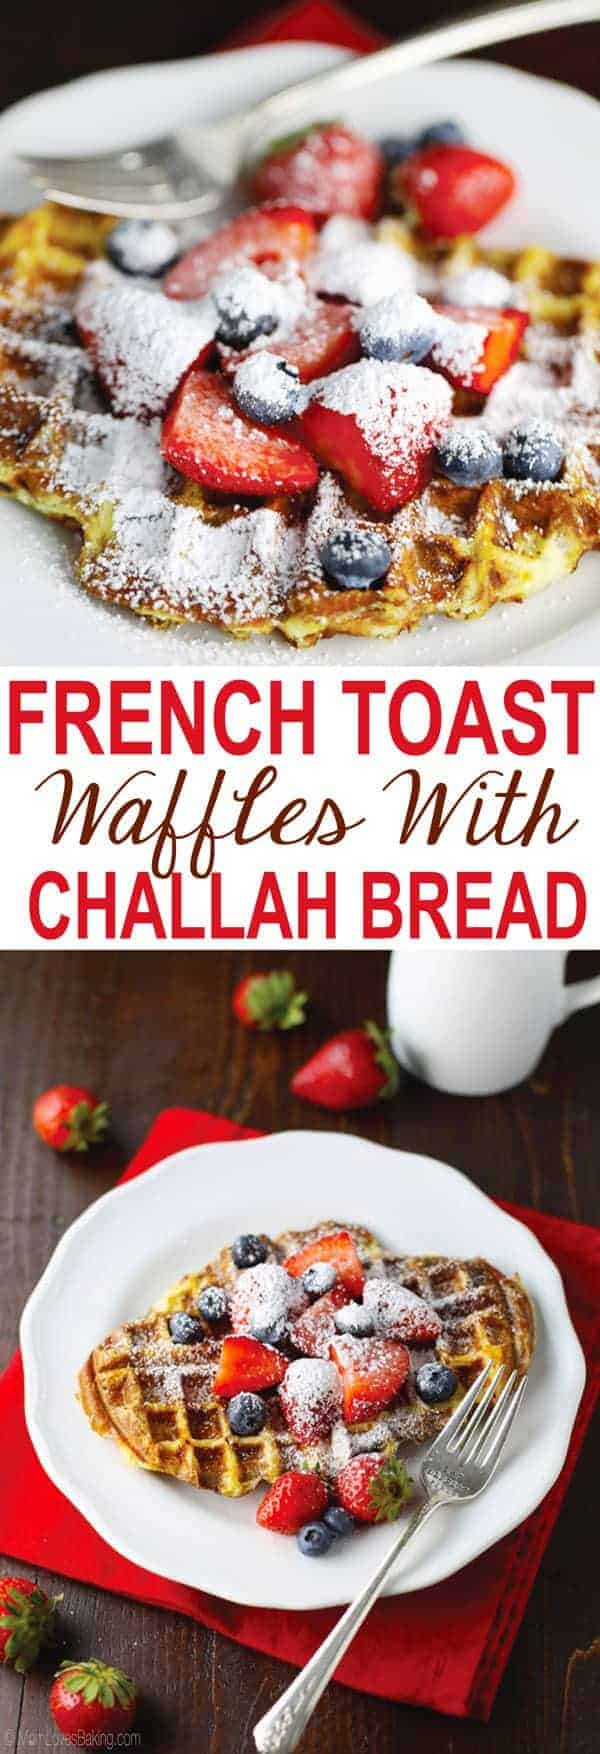 French Toast Waffles with Challah Bread